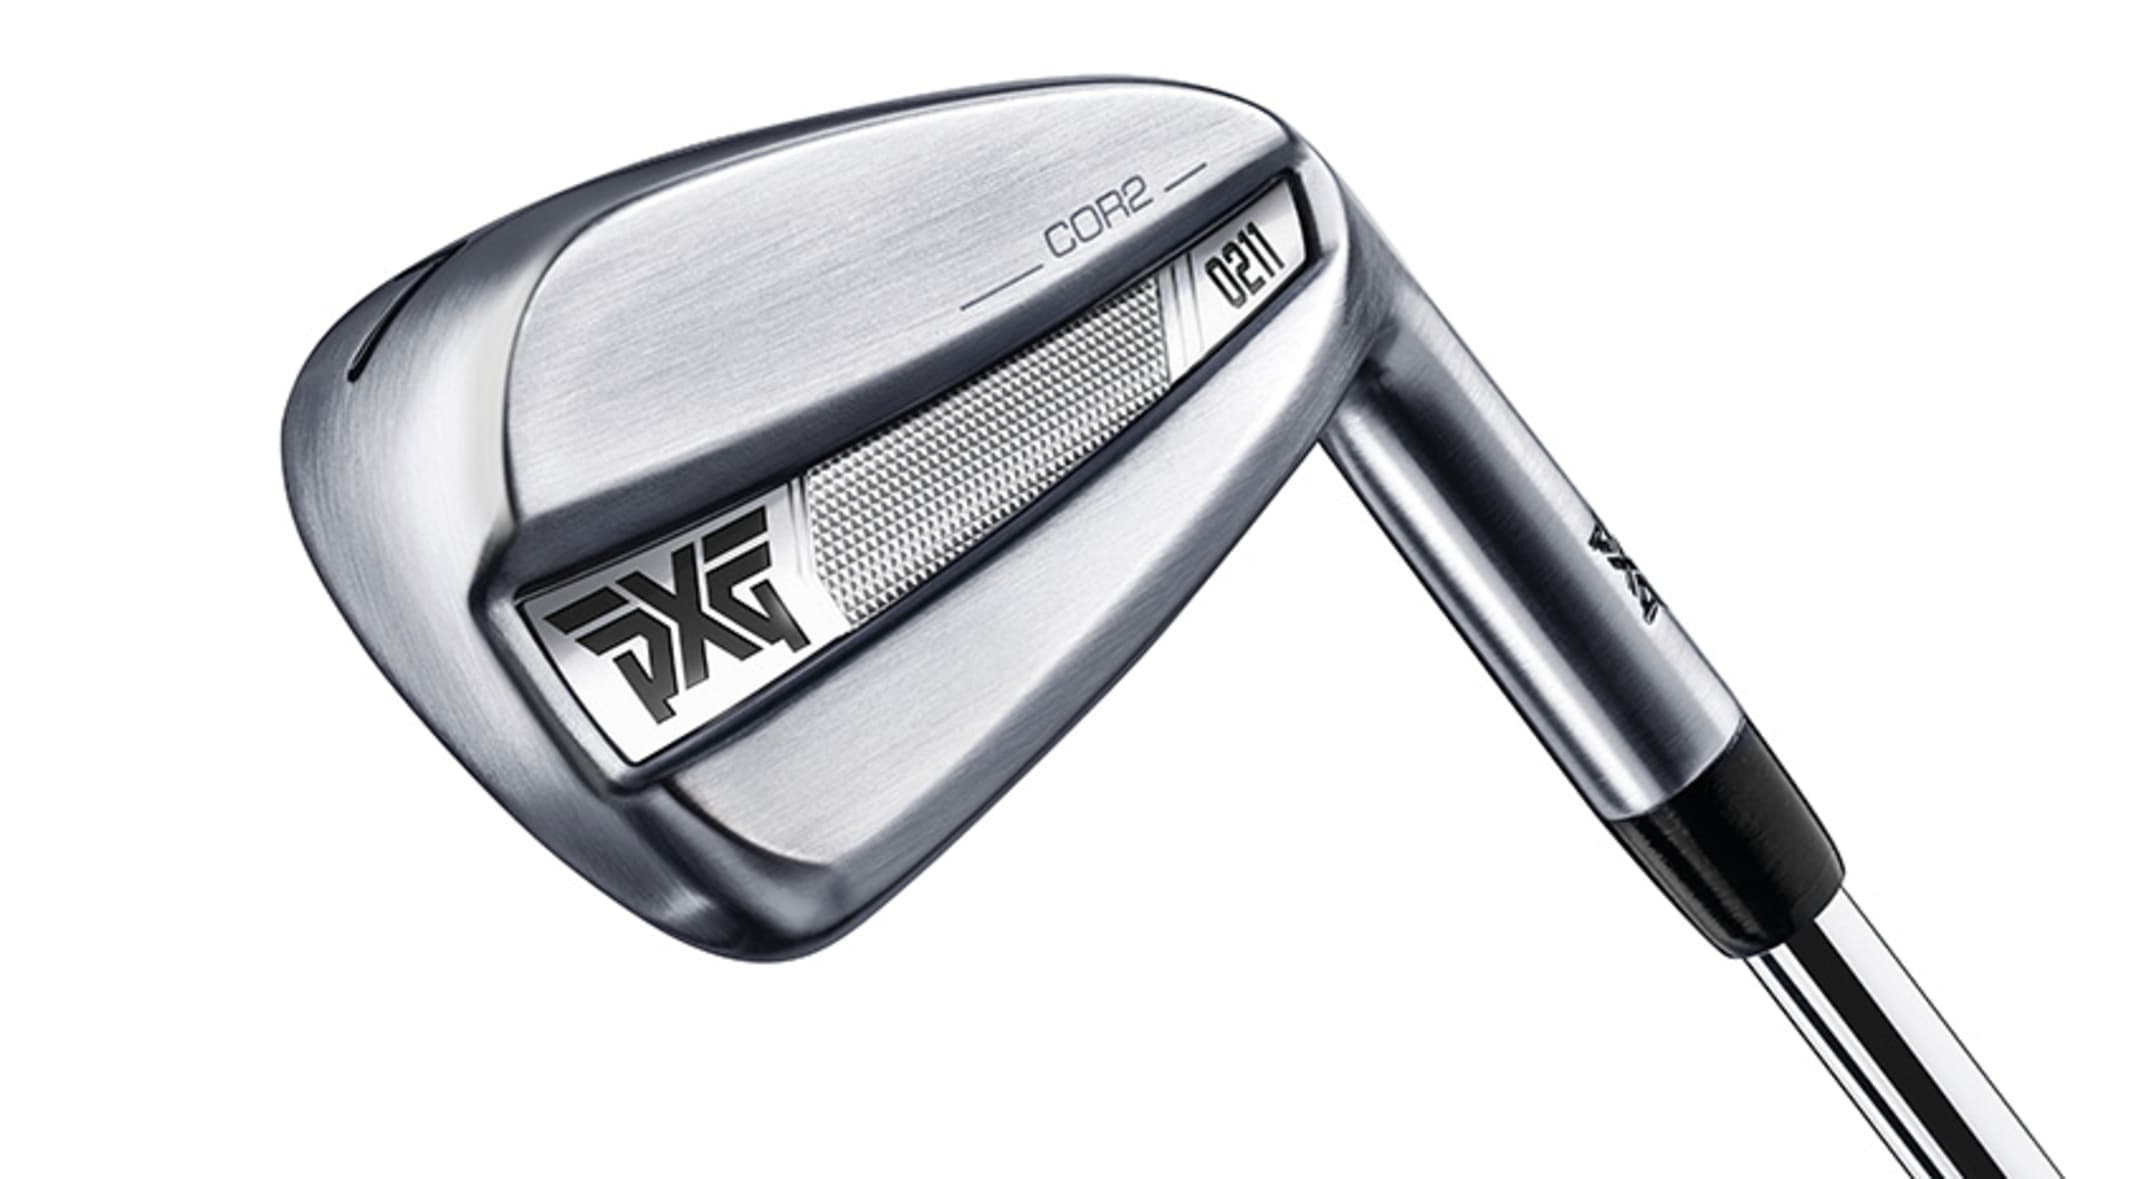 PXG to sell new investment cast 0211 irons for about half